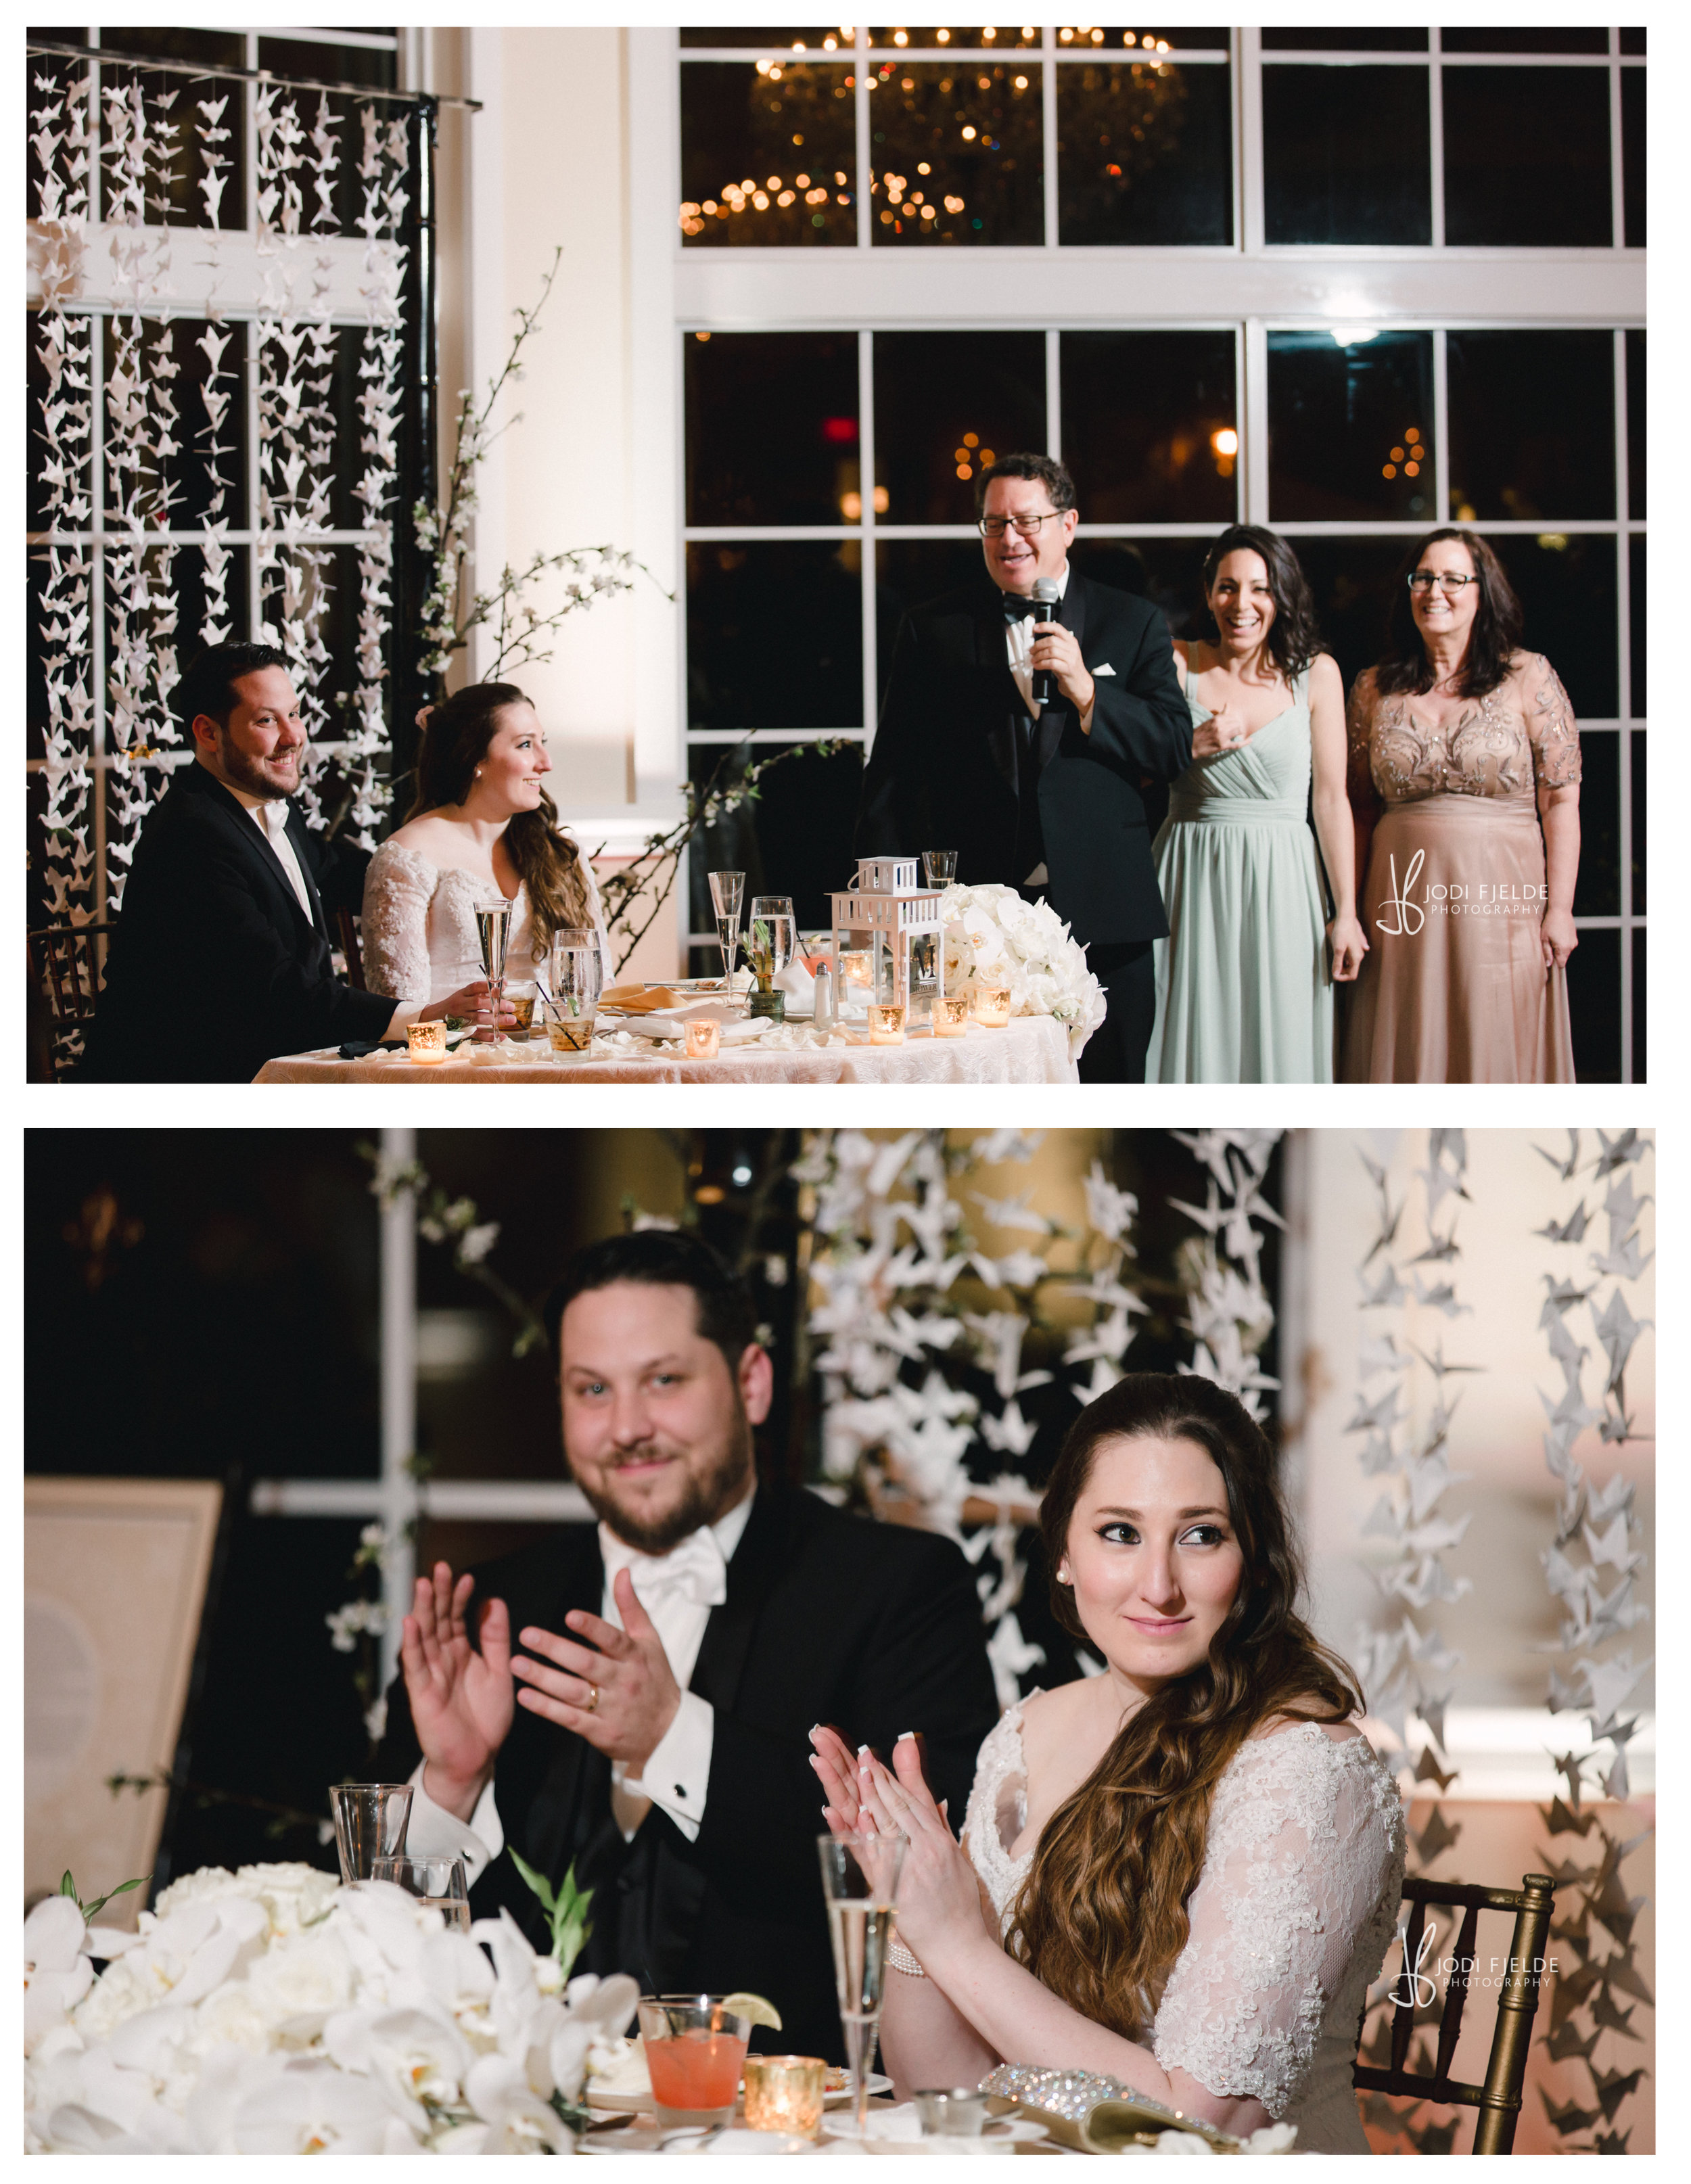 Deer_Creek_Country_Club_Wedding_Jodi_Fjelde_Photography_Andrea_Jason_20.jpg